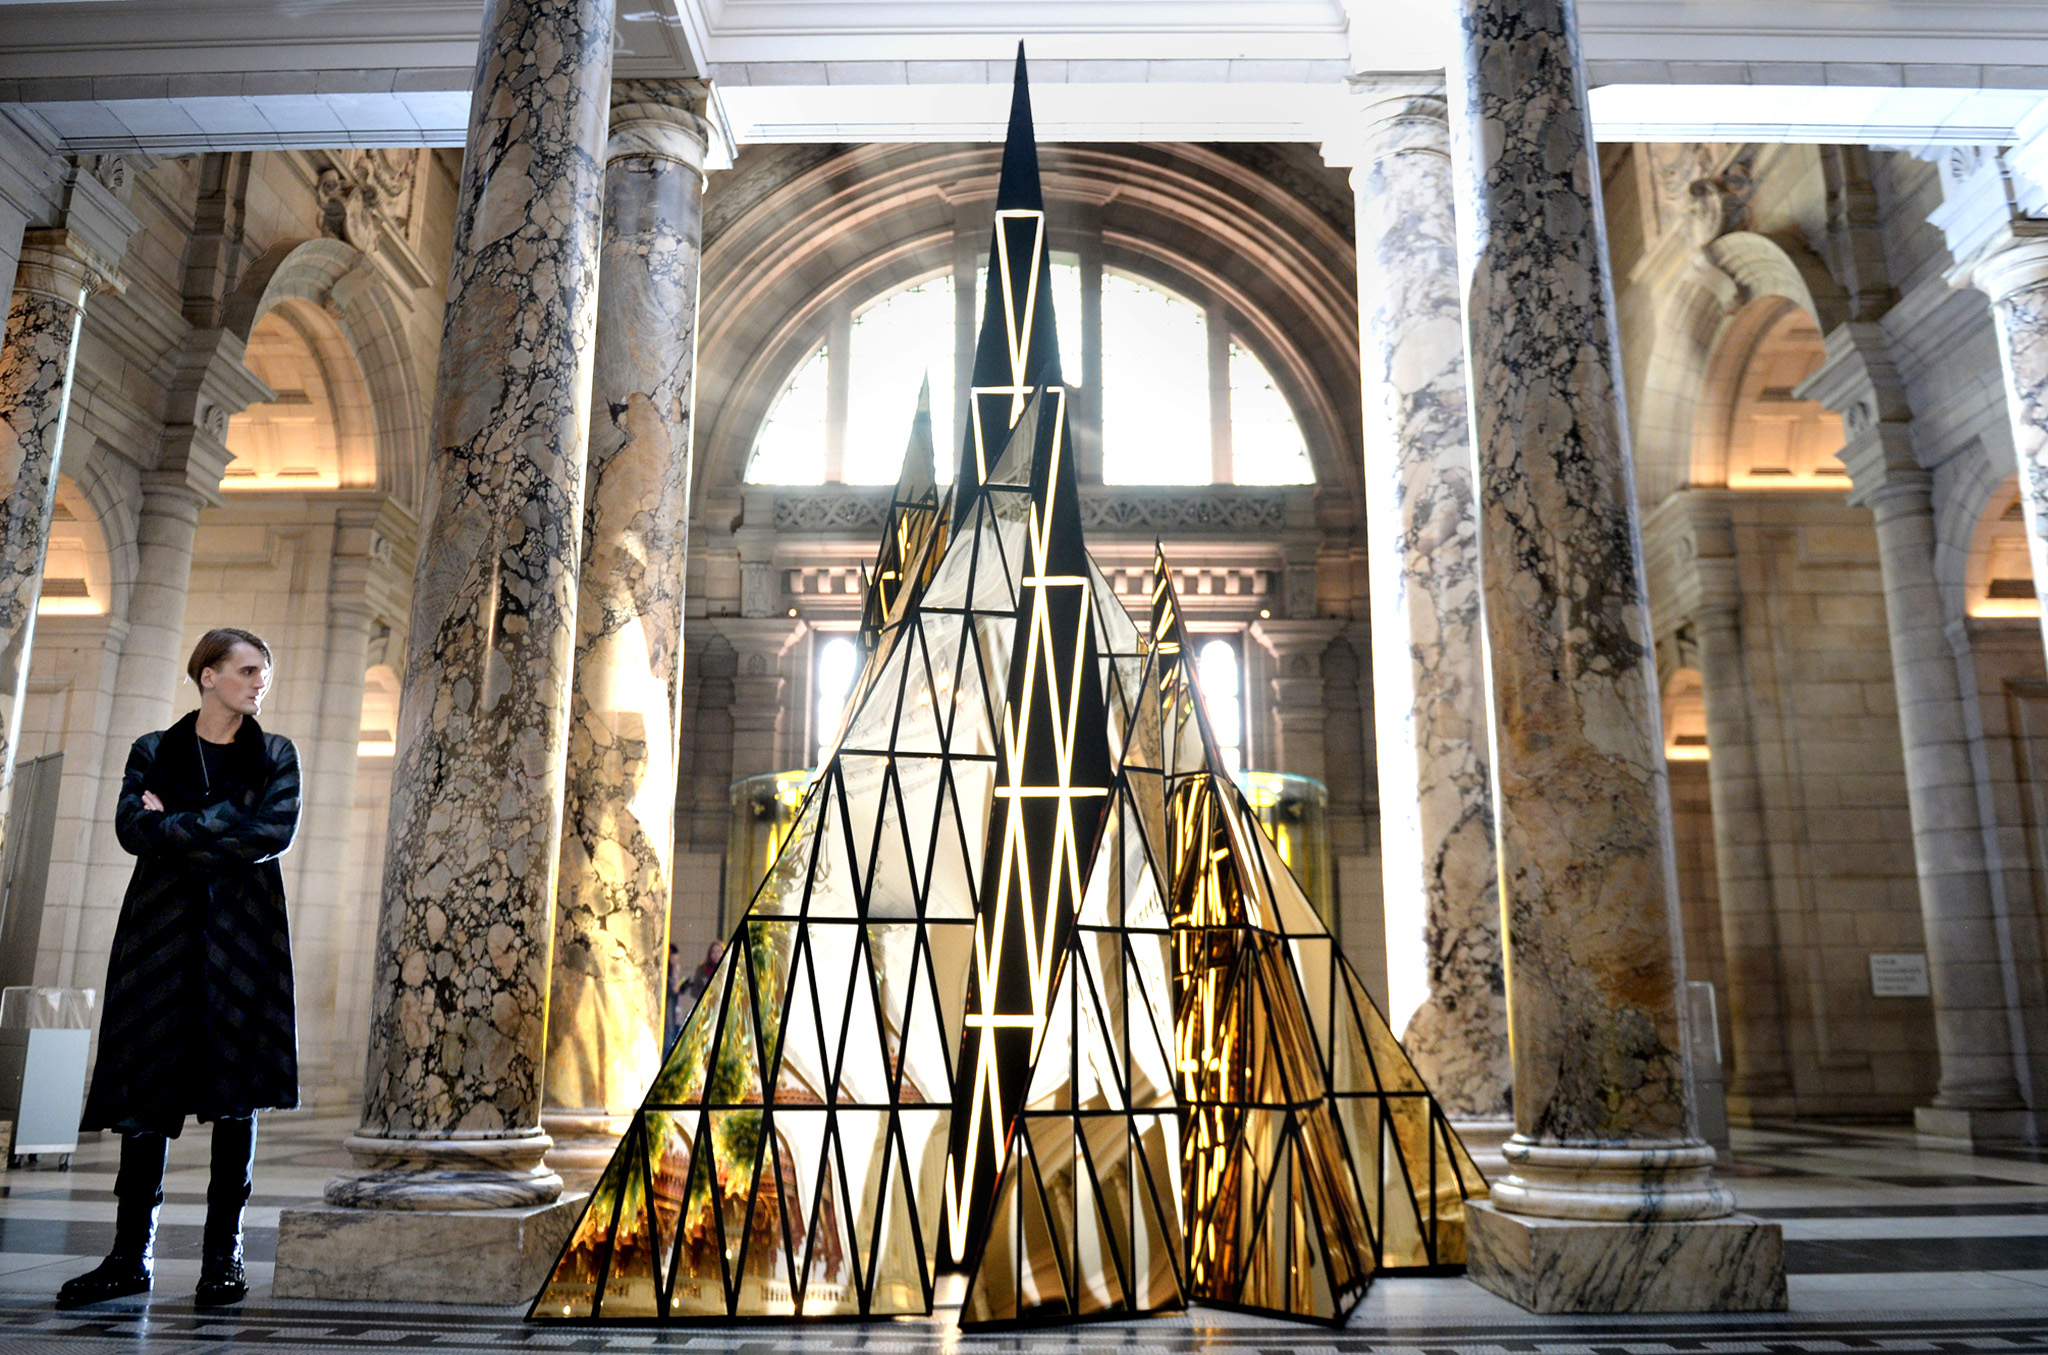 Fashion designer Gareth Pugh unveils the Victoria and Albert (V&A) Museum's Christmas tree, tilted Ceremony, London. PRESS ASSOCIATION Photo. Picture date: Tuesday December 9, 2014. Photo credit should read: Anthony Devlin/PA Wire